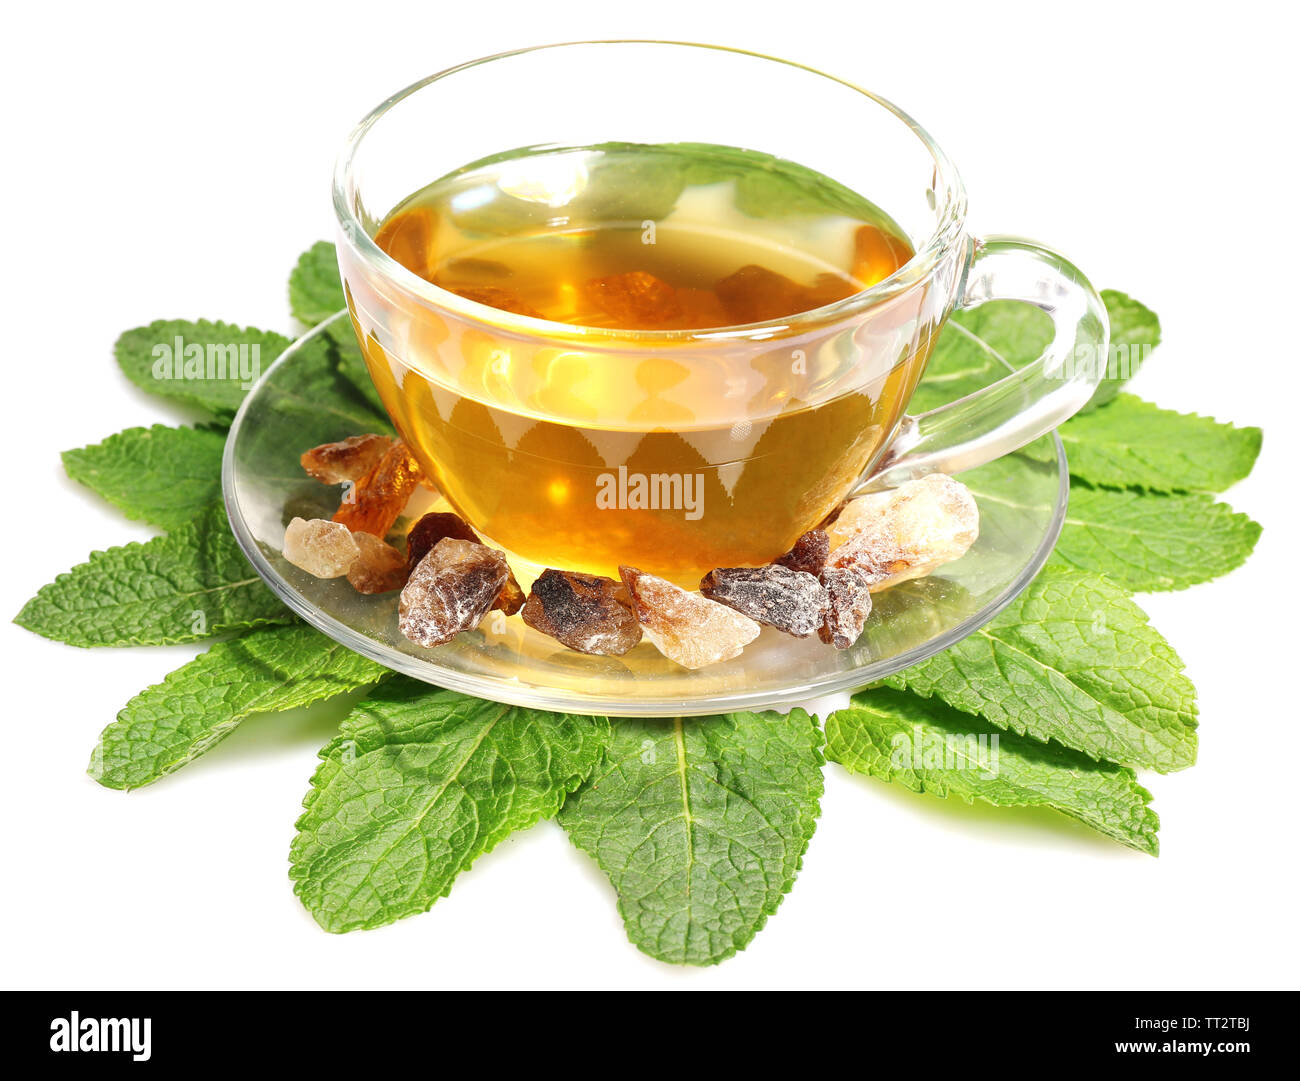 Composition of fresh mint leaves, mint tea in glass cup and brown sugar isolated on white - Stock Image